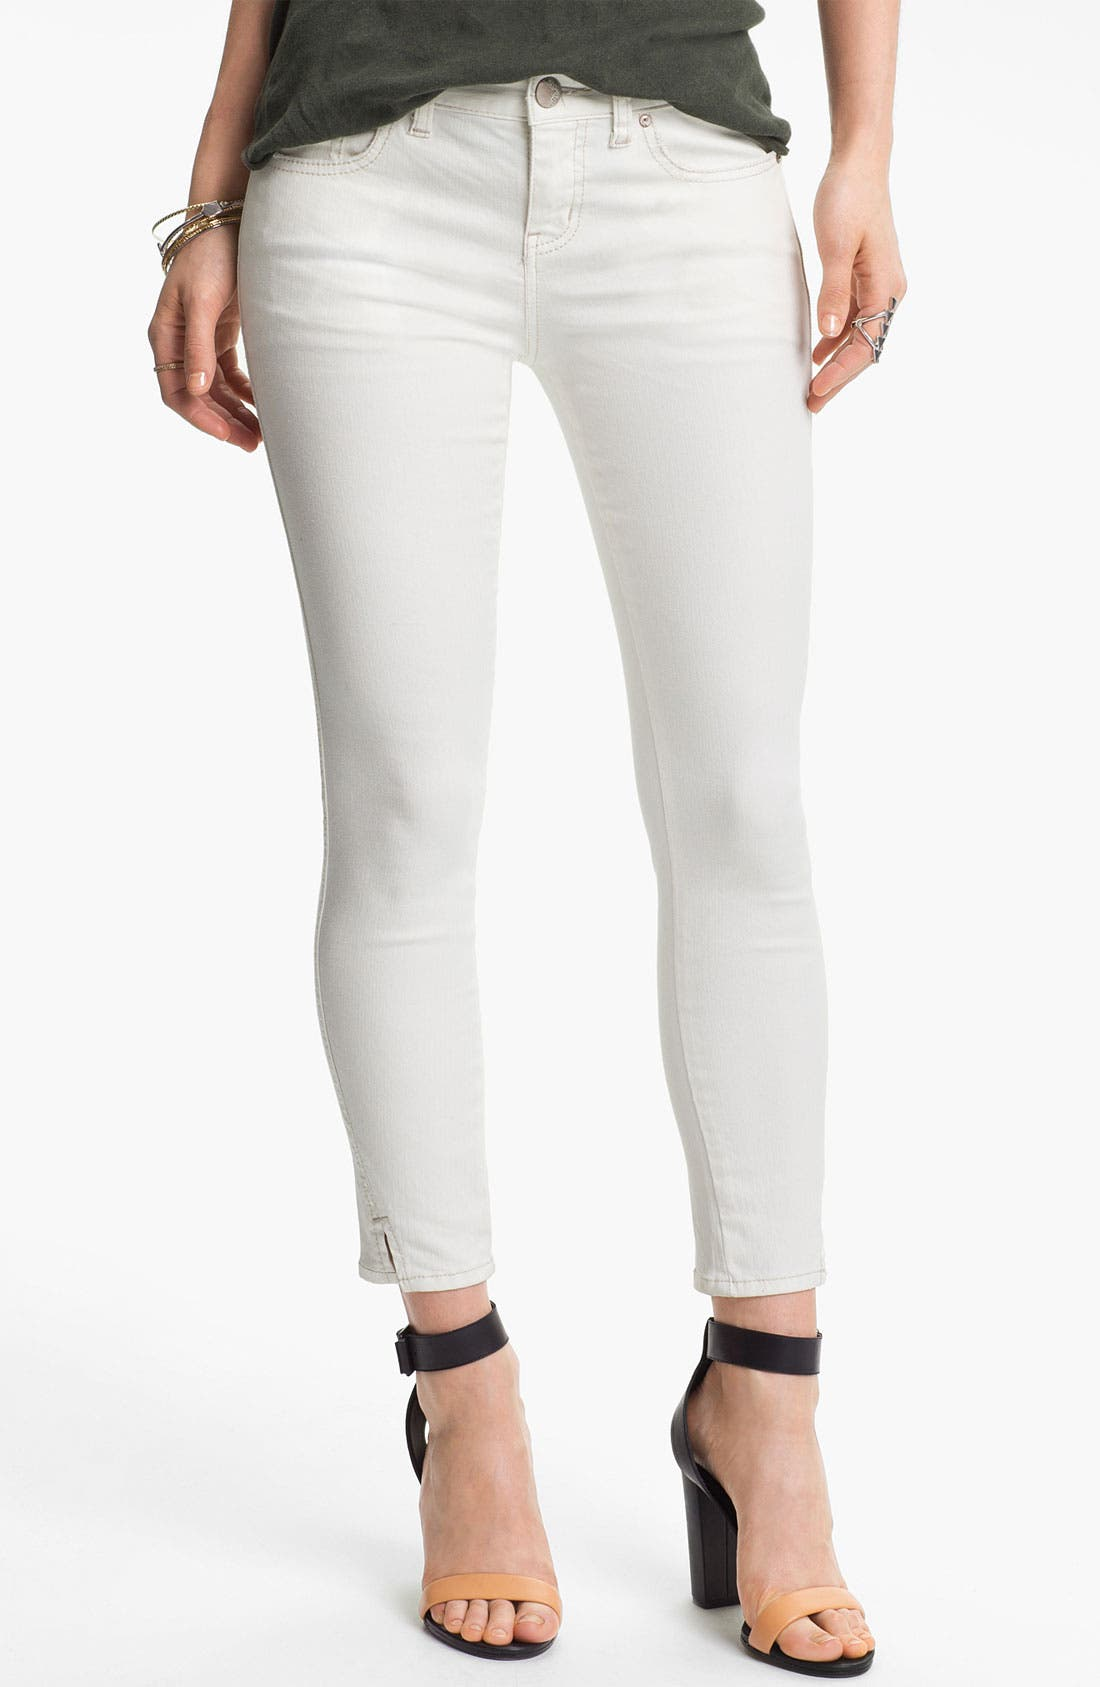 Main Image - Free People Crop Stretch Denim Skinny Jeans (White)